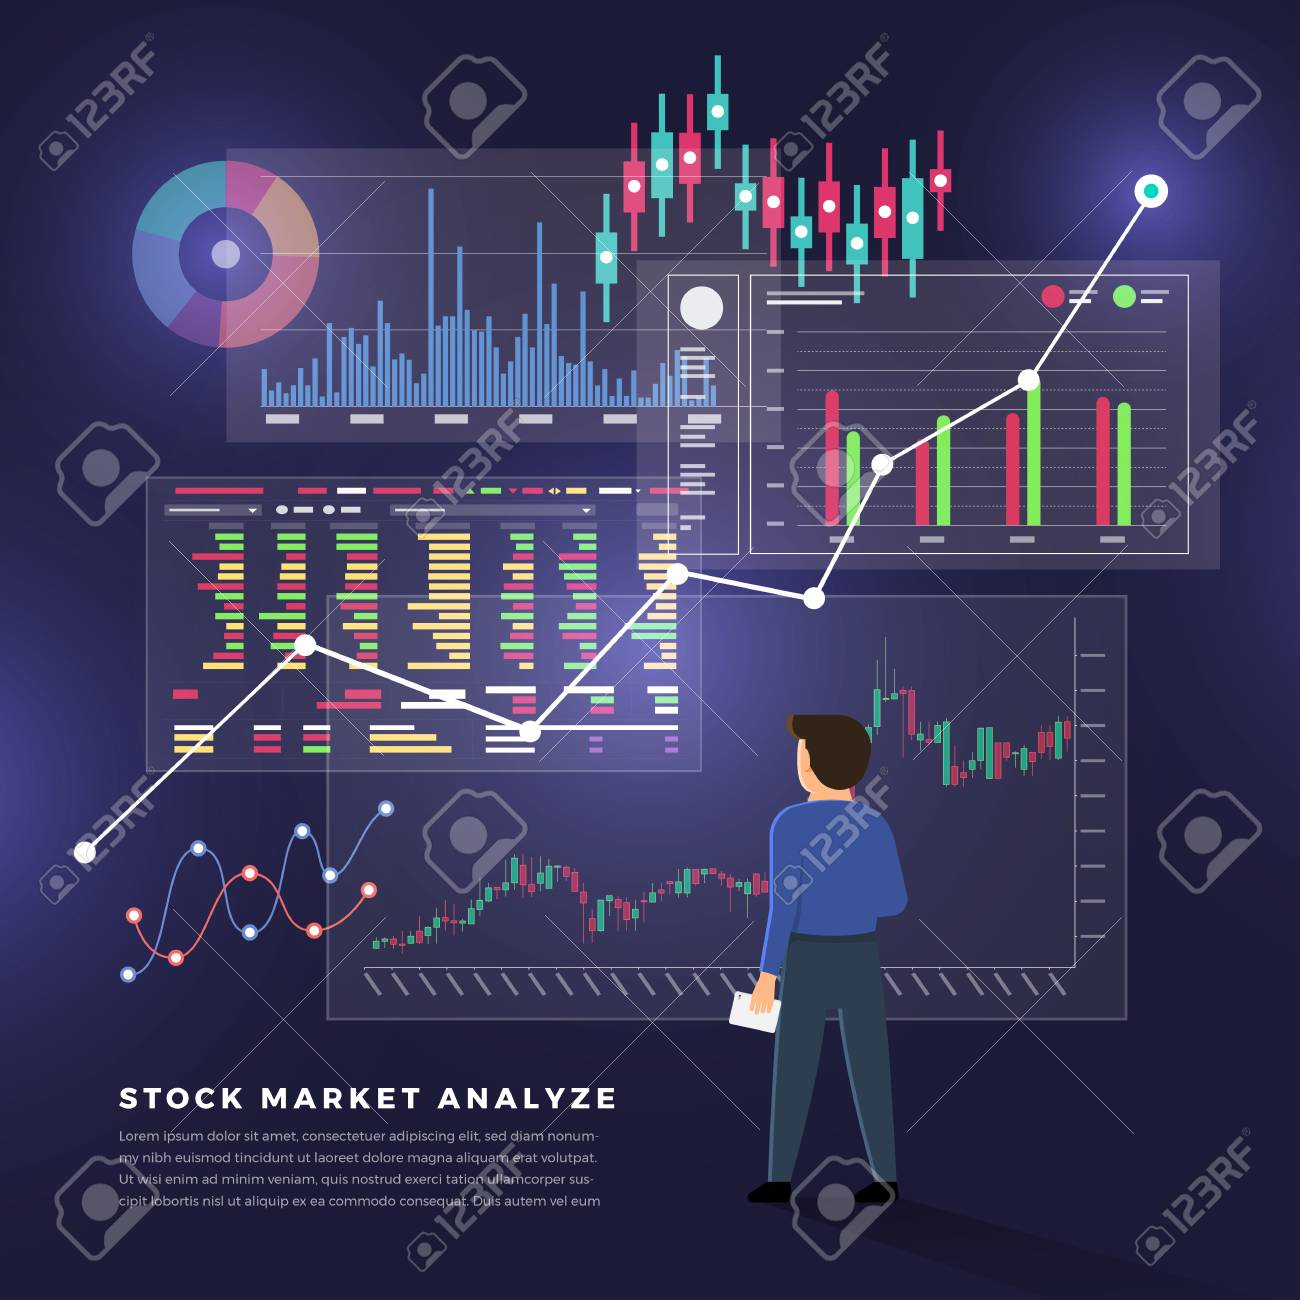 Flat design concept stock exchang and trader. Financial market business with graph chart analysis. Vector illustrations. - 105052985